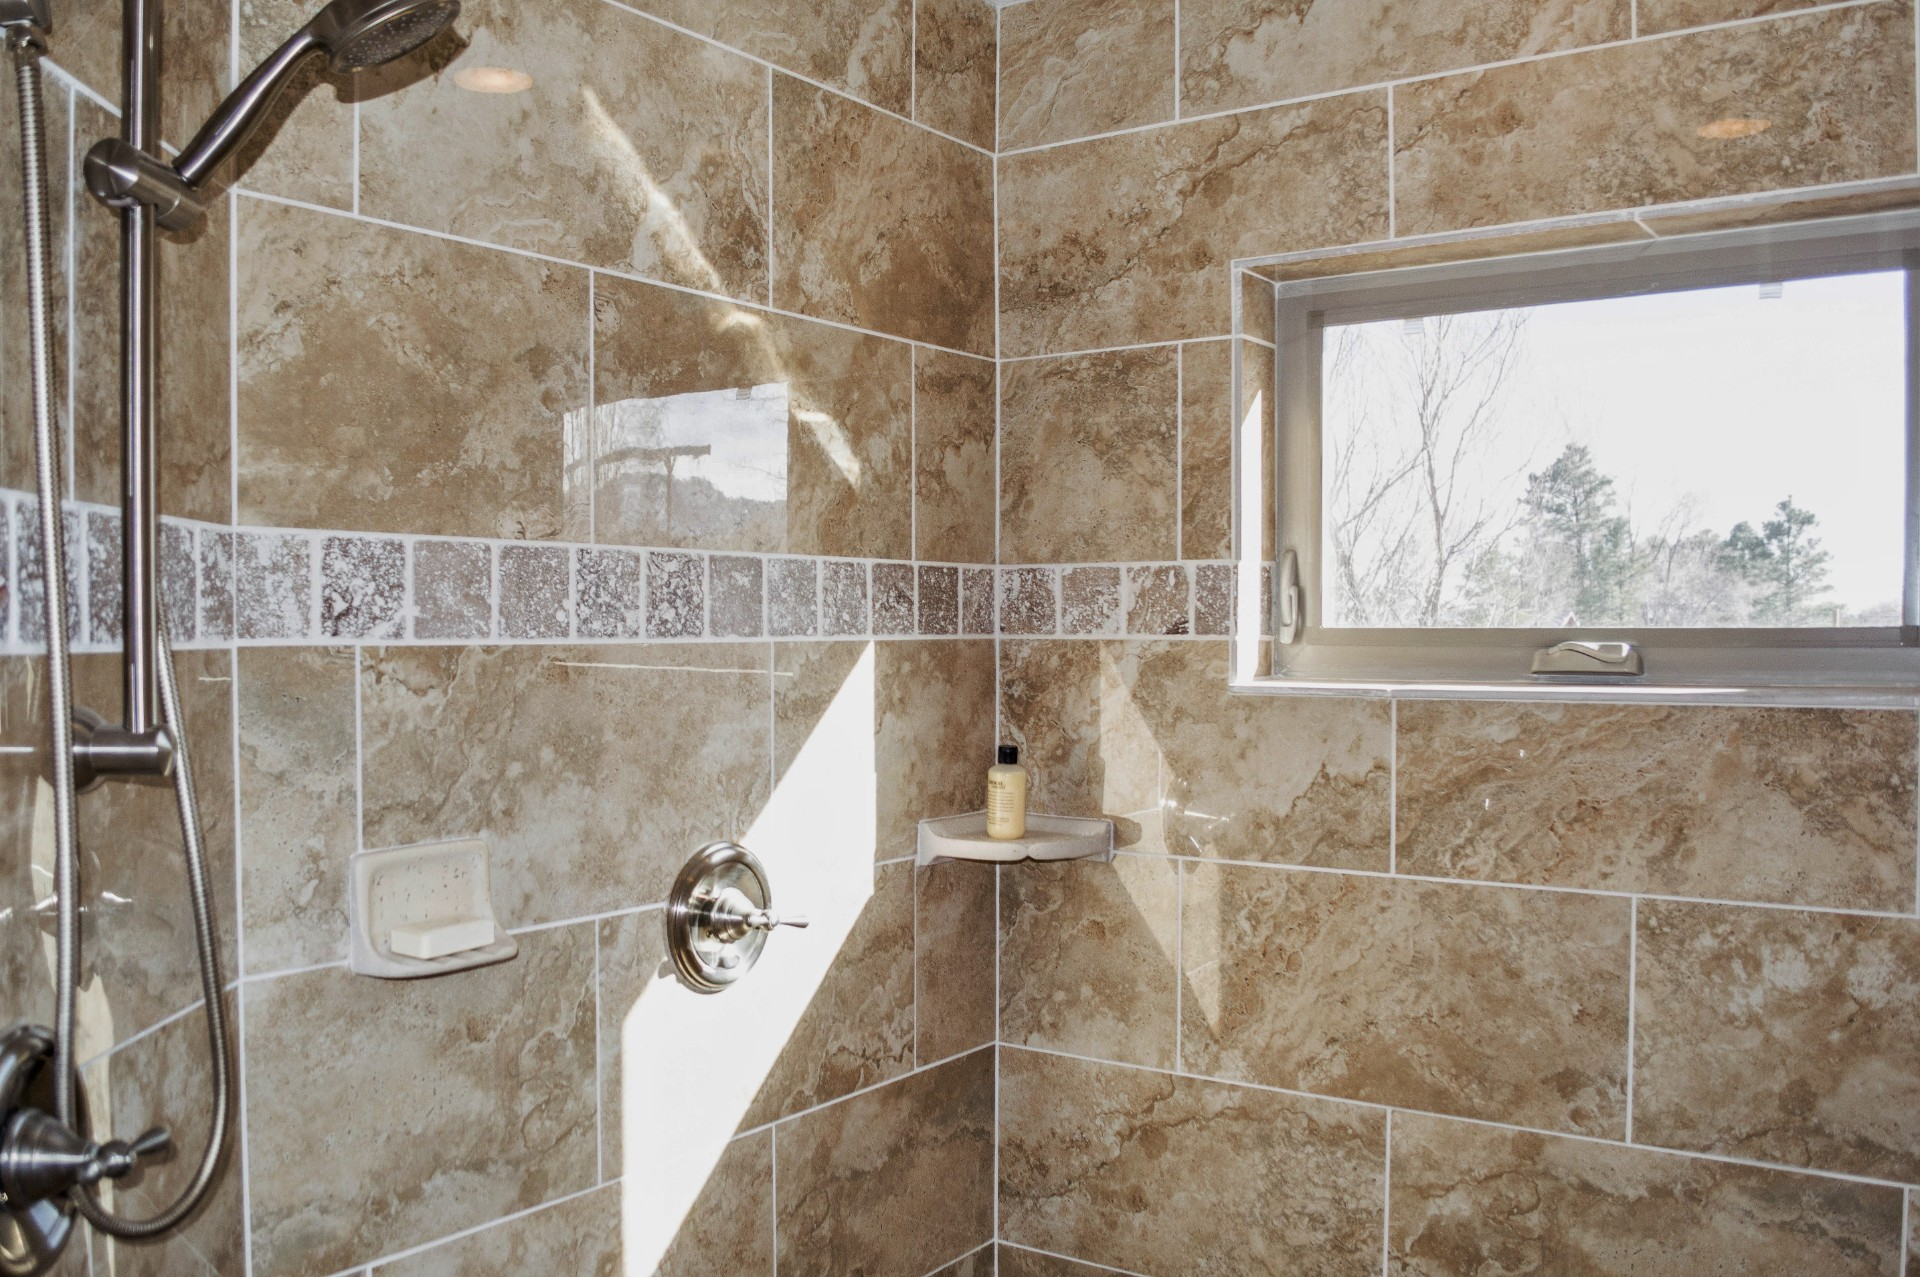 Completed shower in a custom bathroom of a residential home.